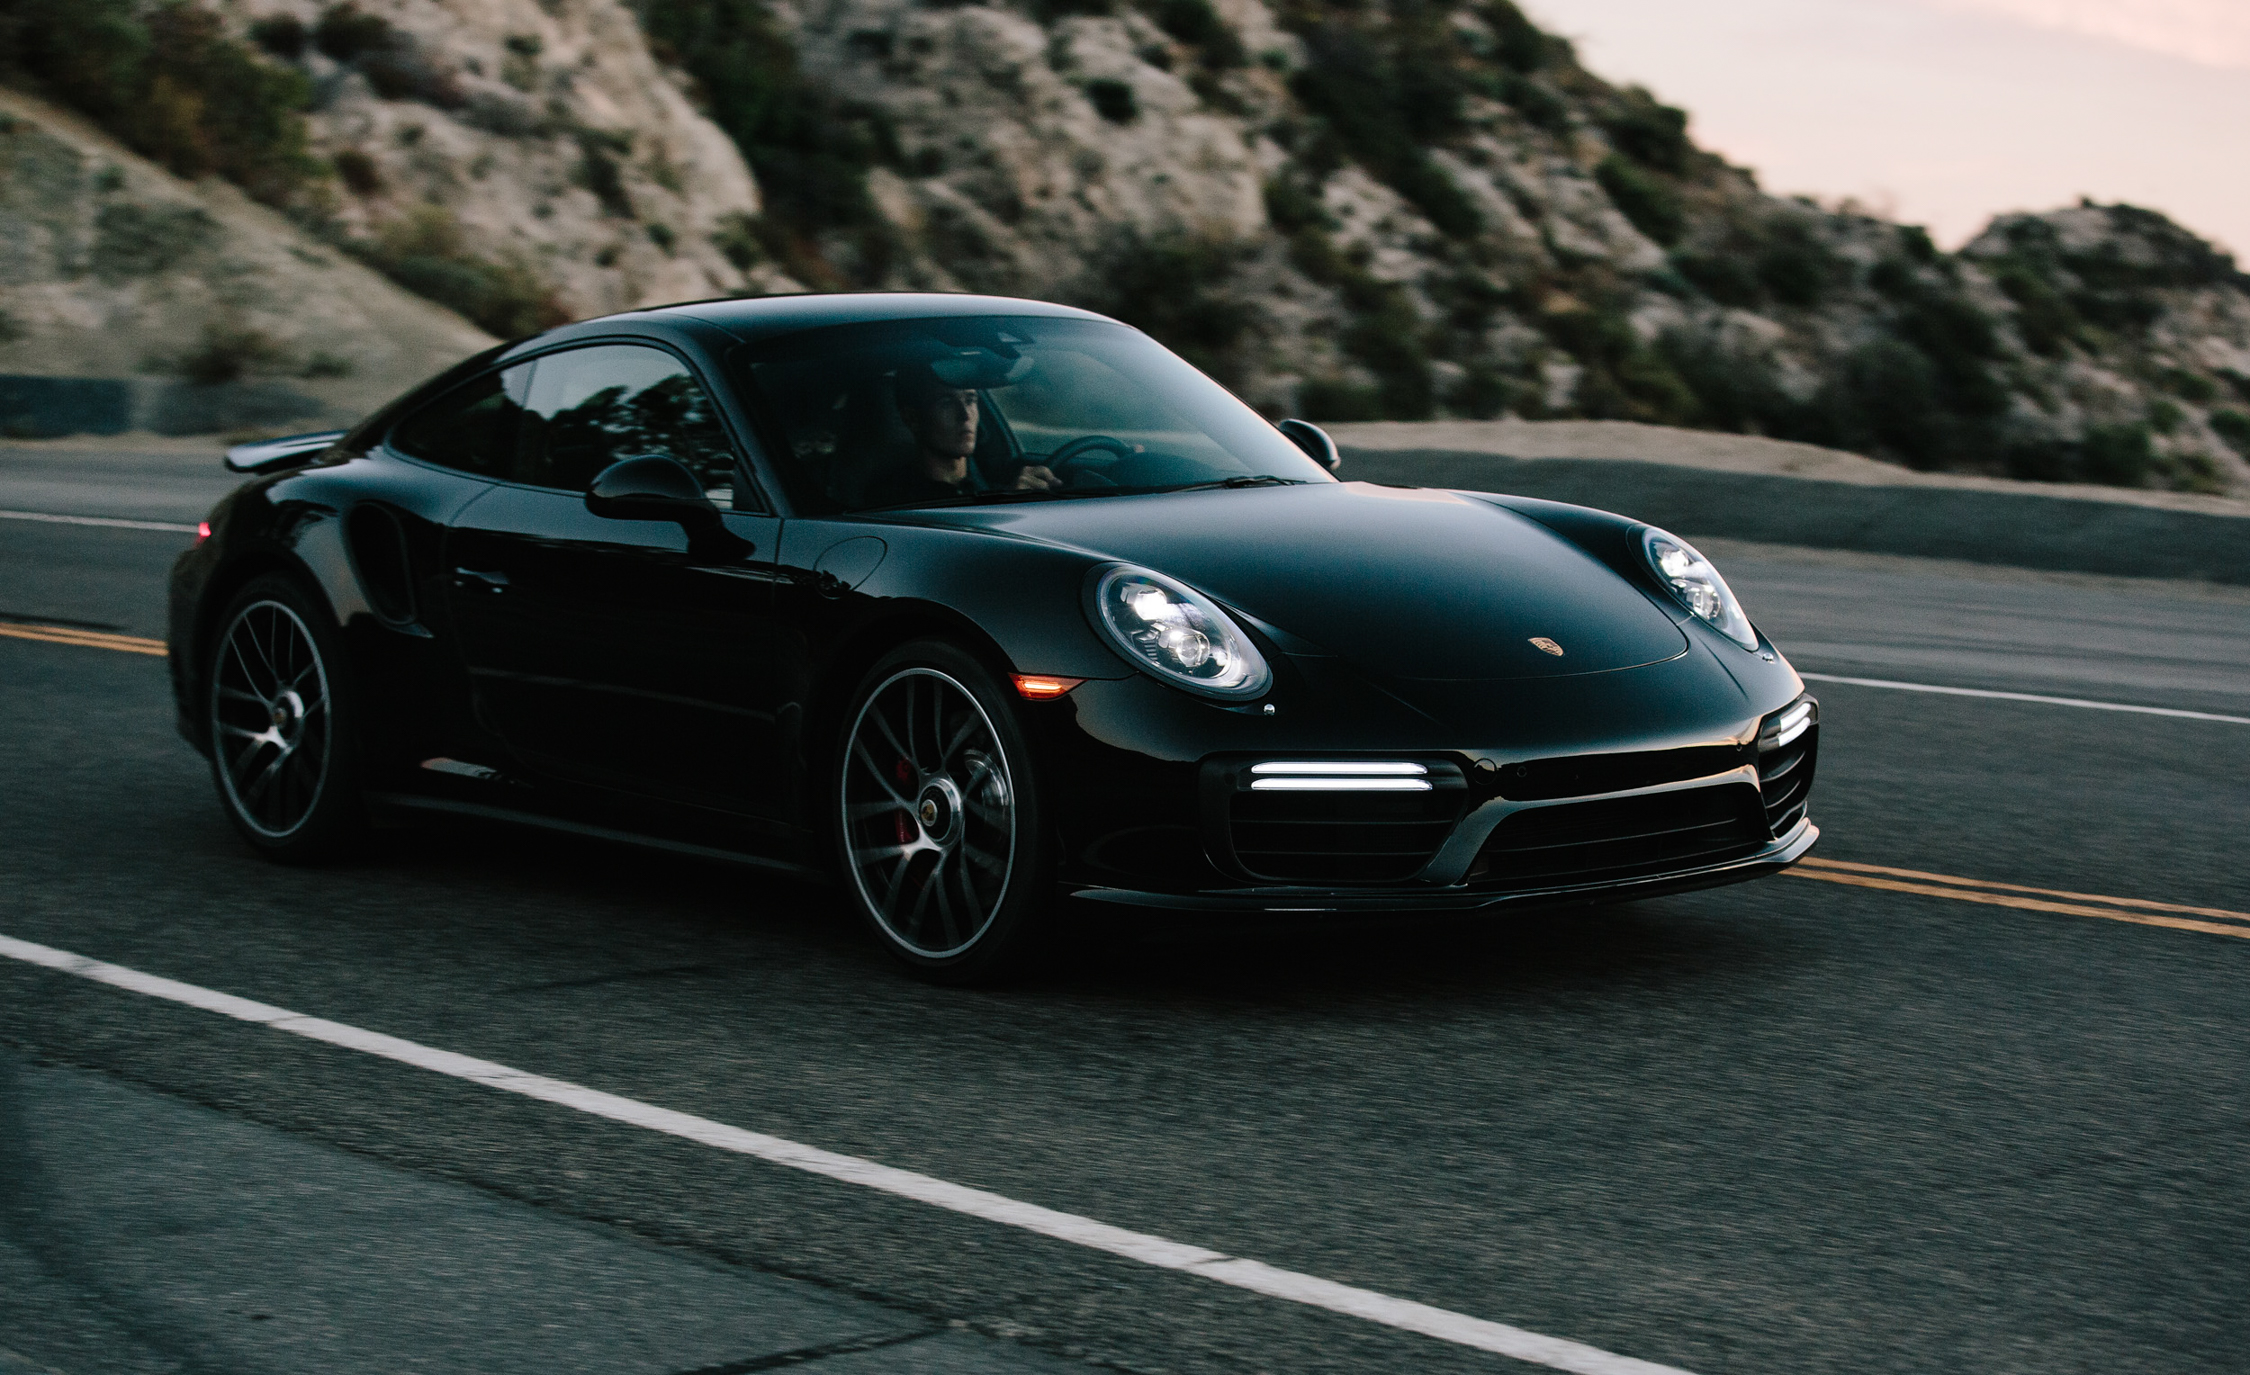 2017 Porsche 911 Turbo Black (Photo 2 of 58)